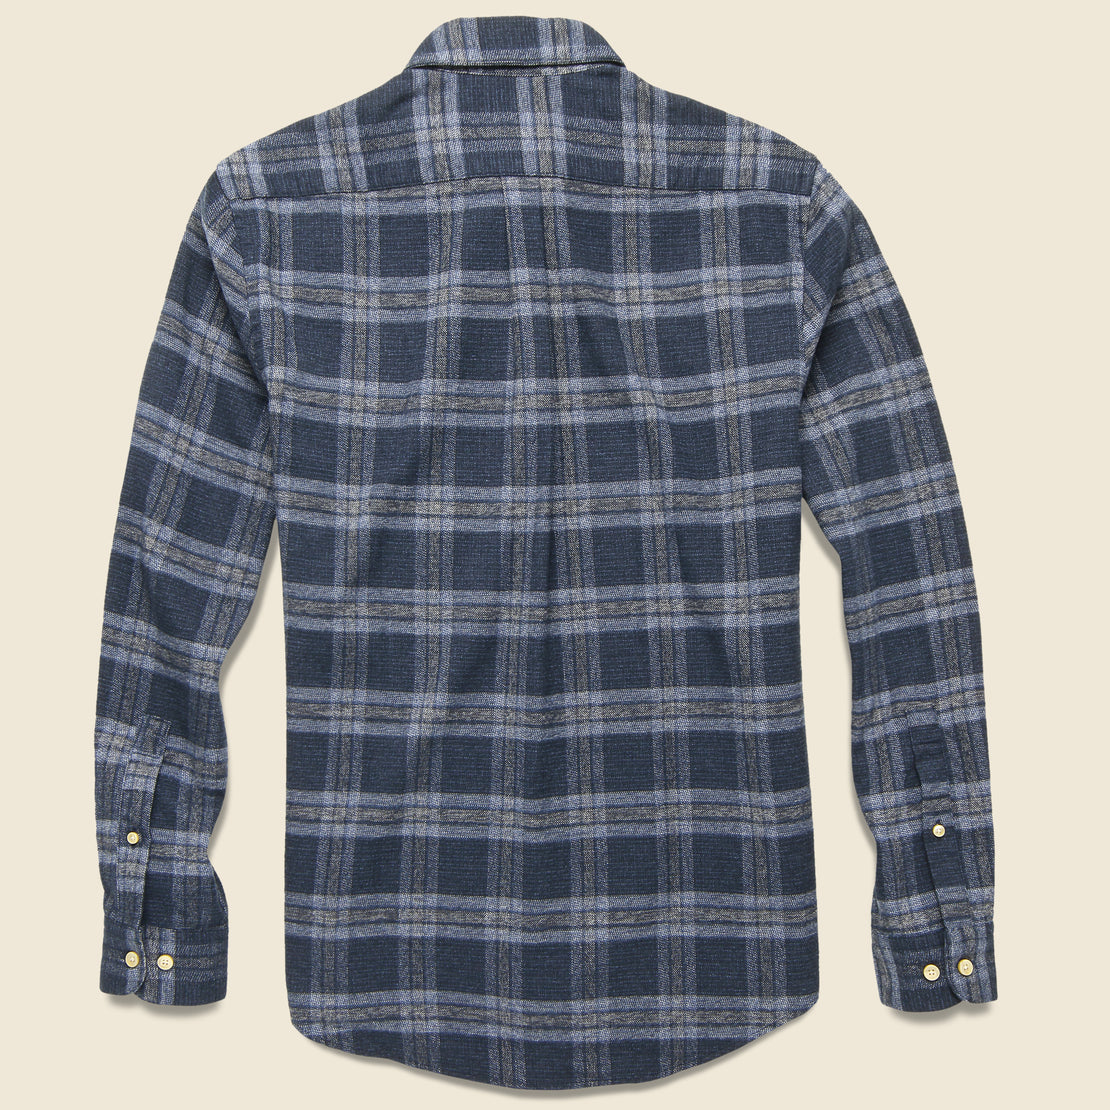 Abstract Check Flannel - Navy/Grey